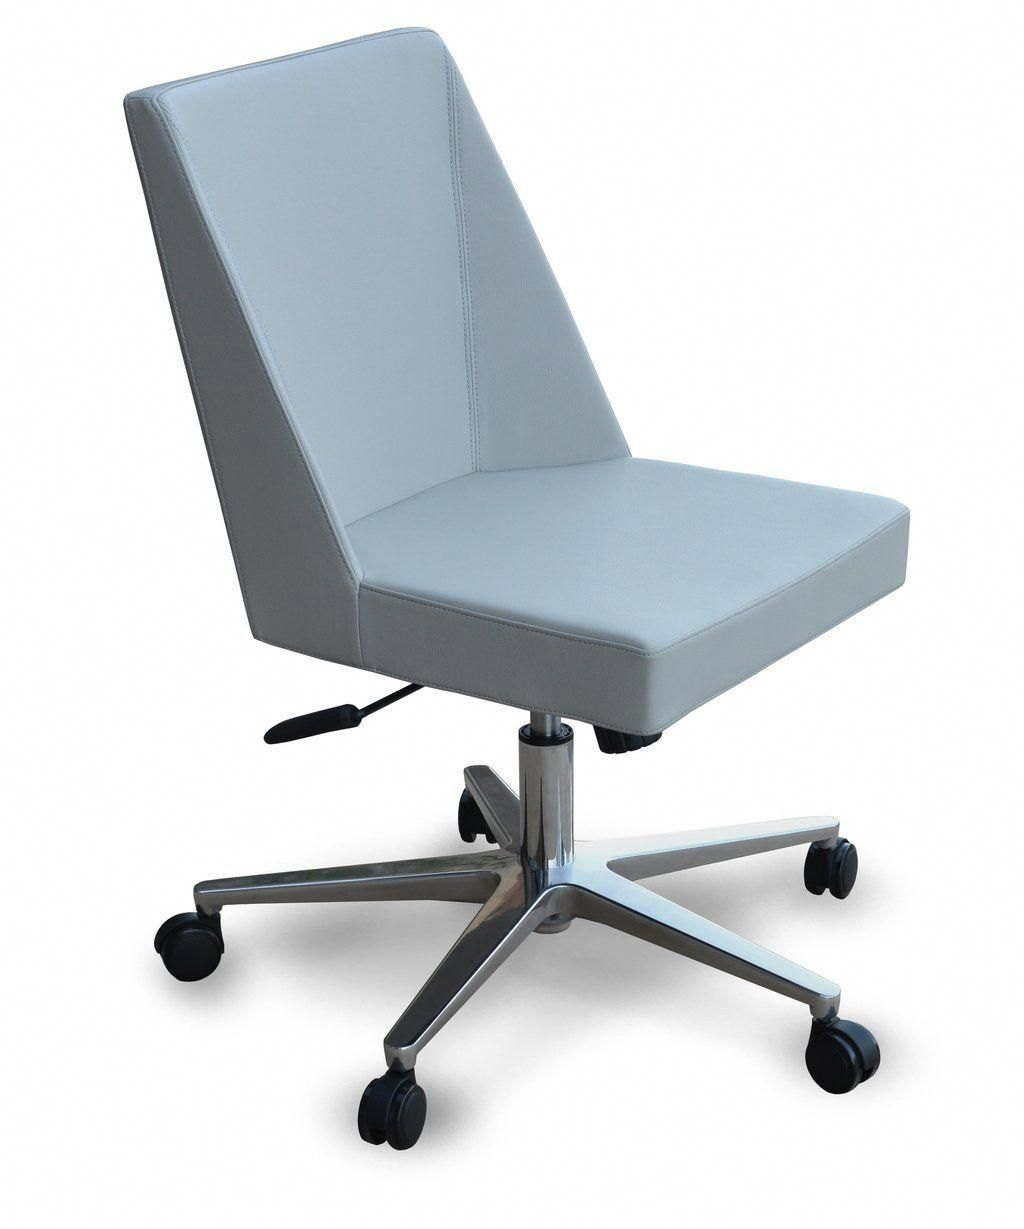 Zero Gravity Office Chair Prisma Office Chair By Soho Concept Chairszerogravity Chairs